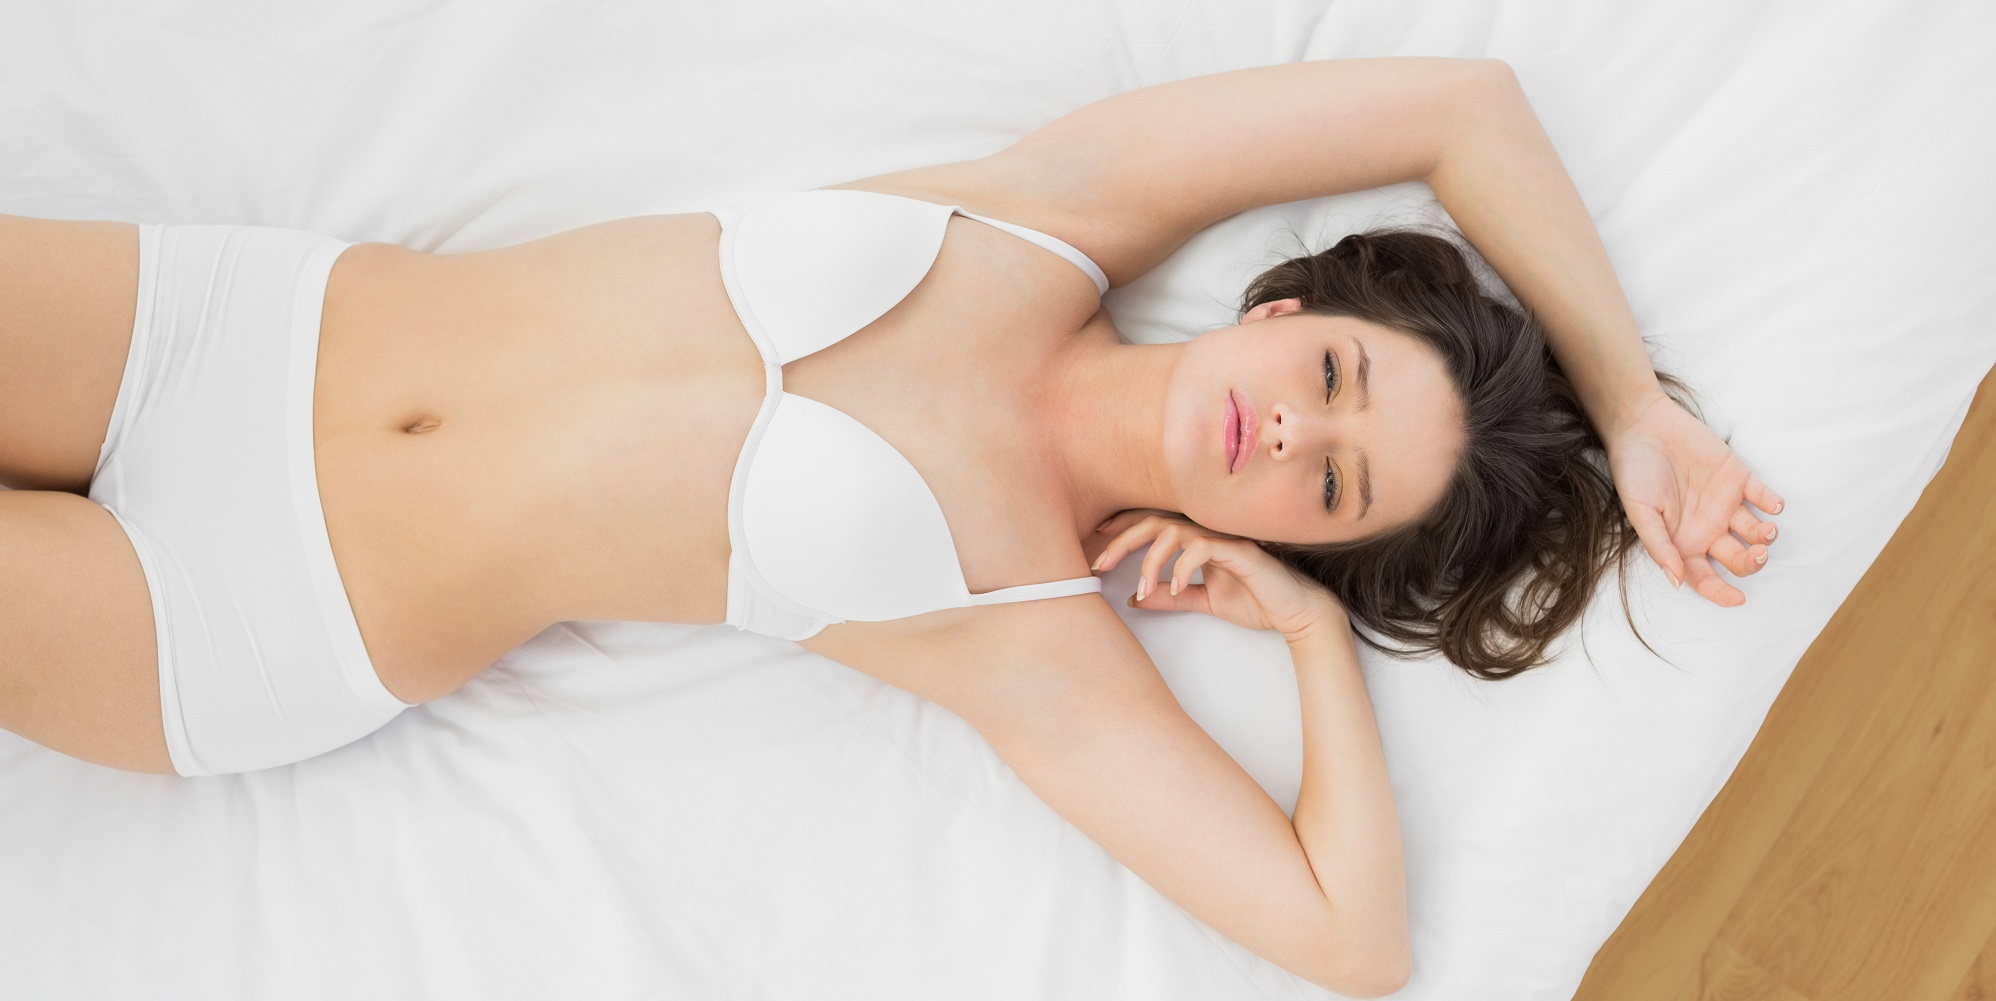 Sleeping in a bra pros and cons